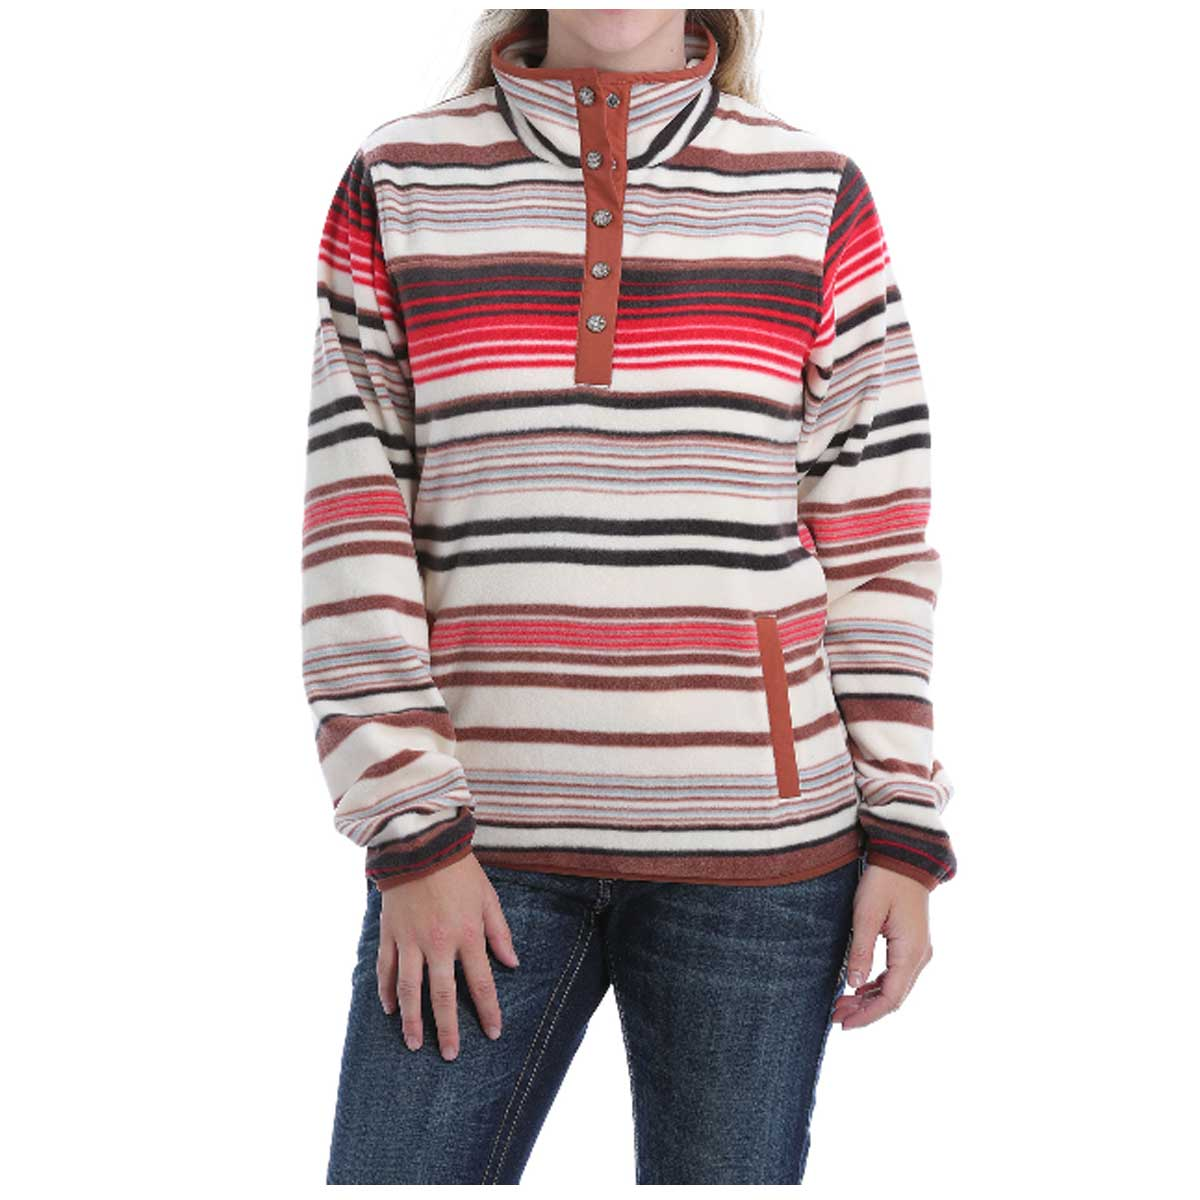 Cinch Women's Printed Polar Fleece Pullover - Coral Cream and Black